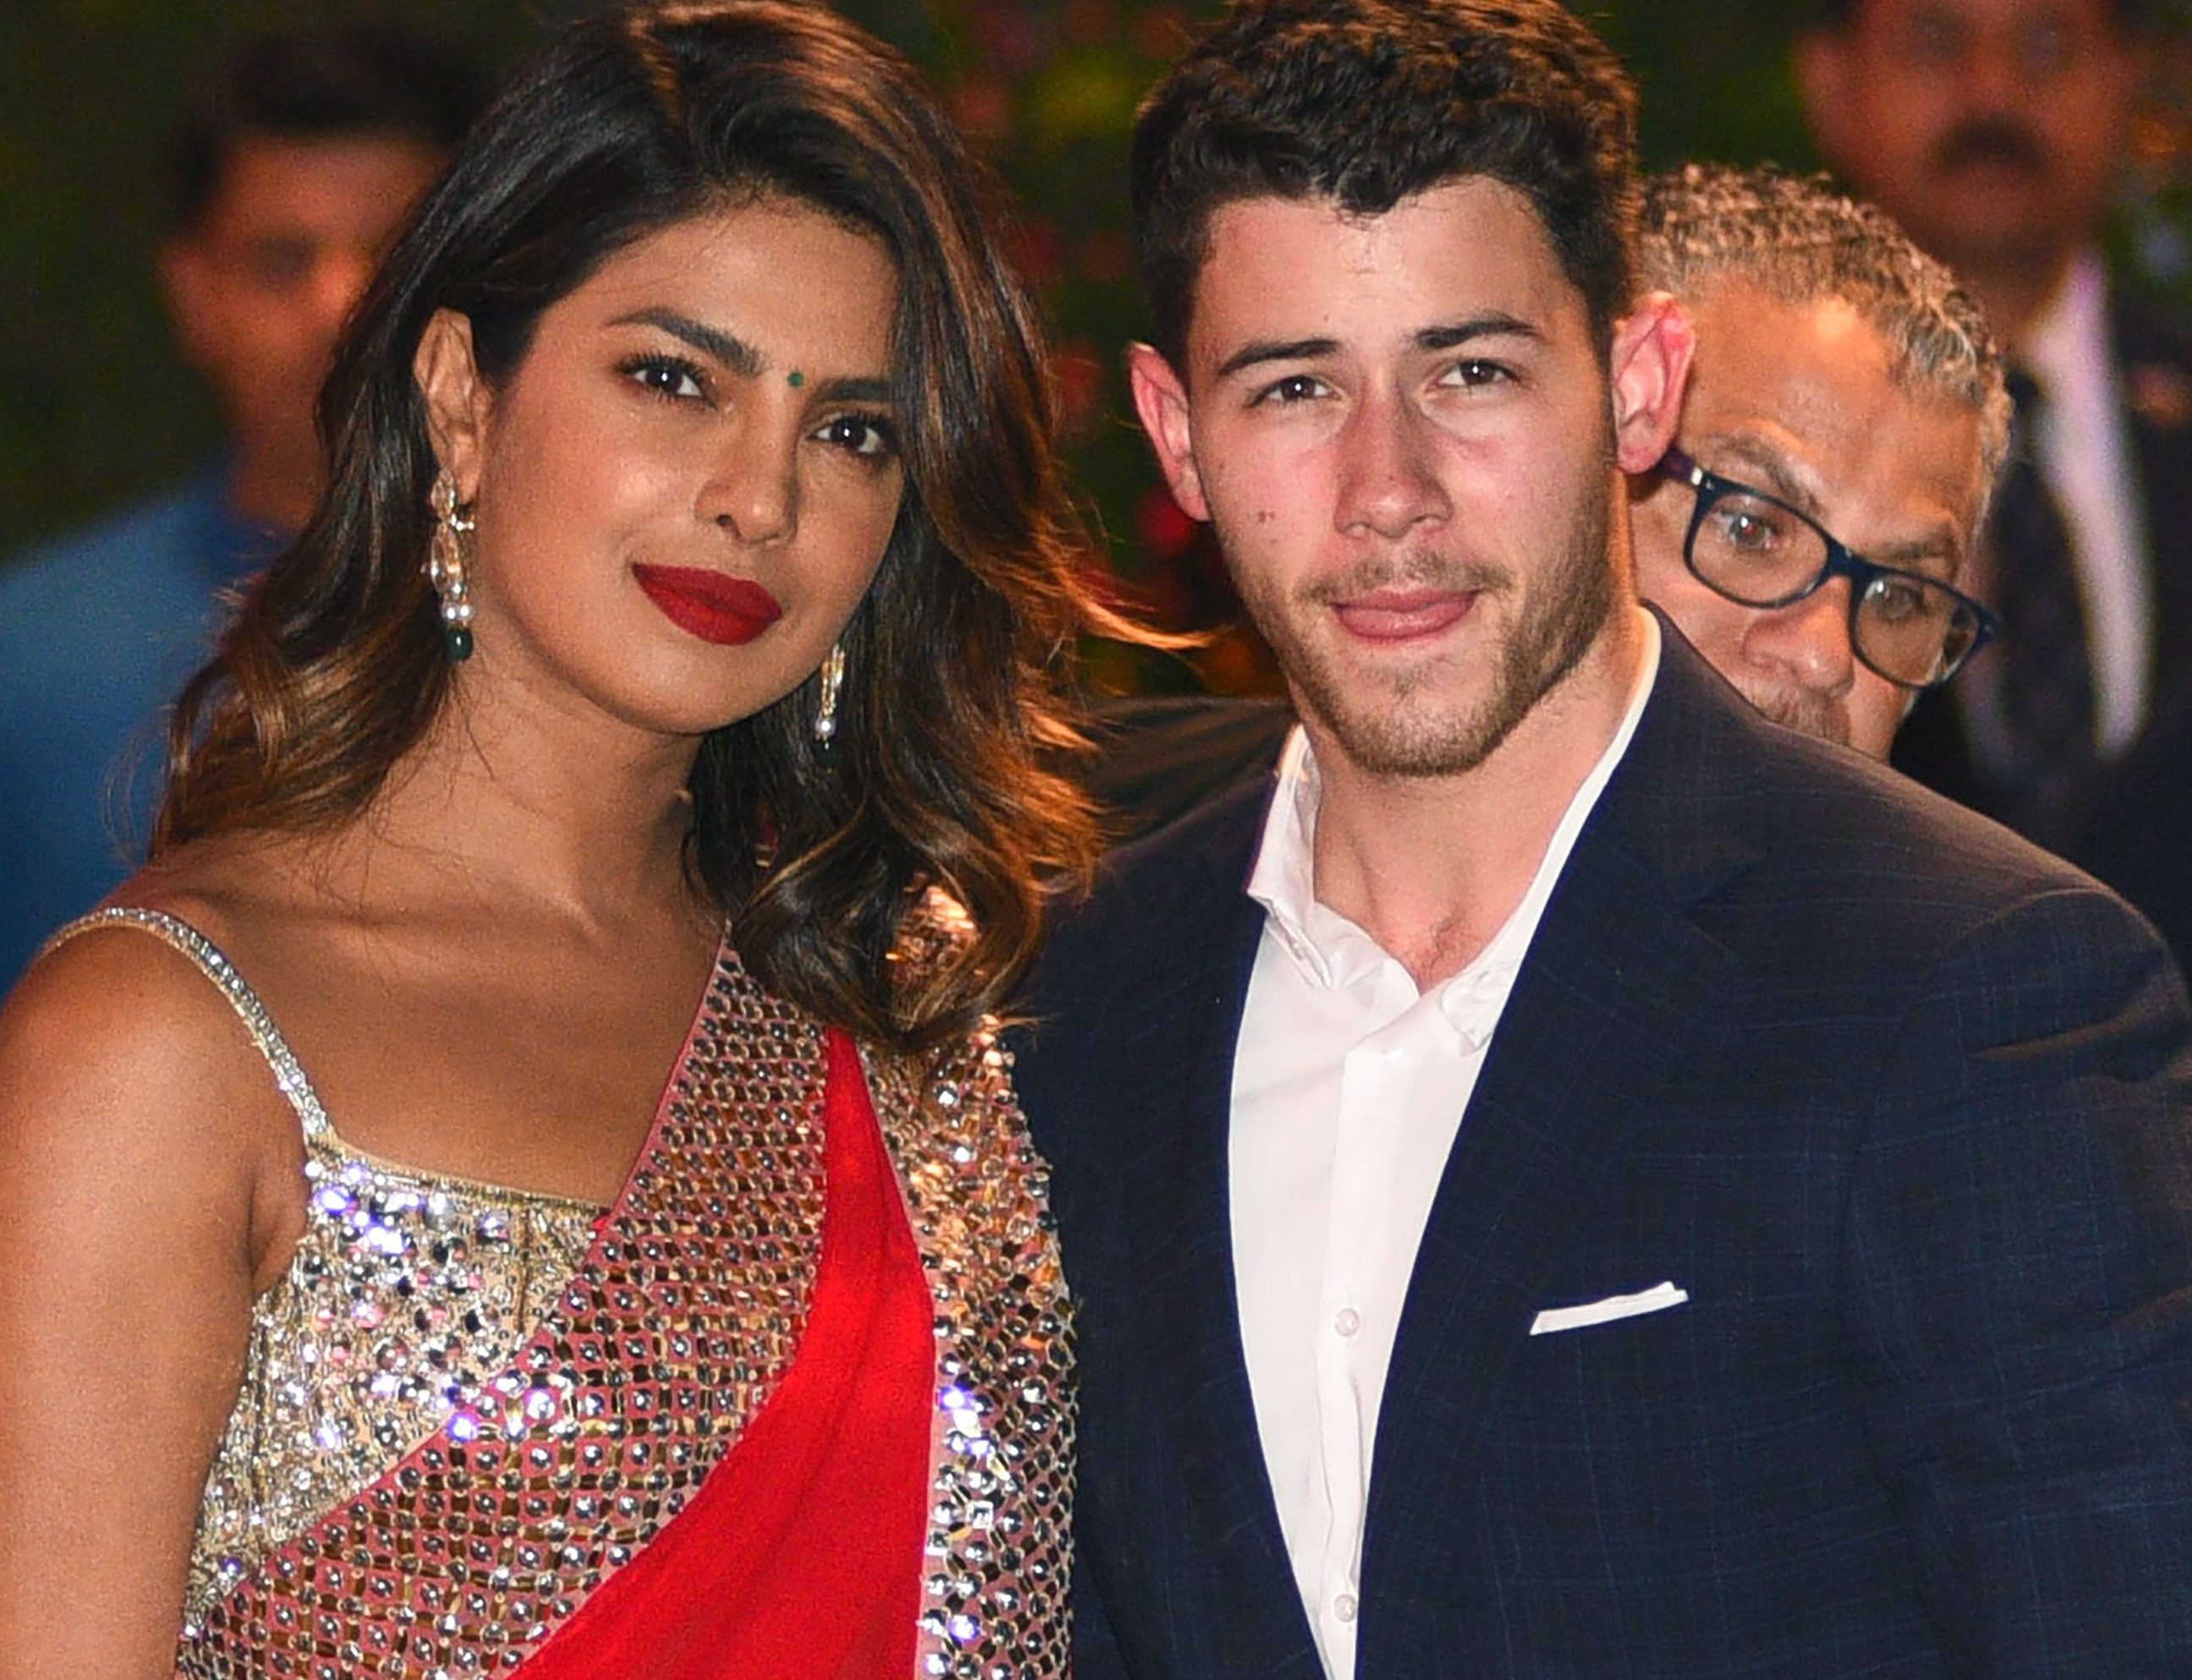 Indian Bollywood actress Priyanka Chopra (L) accompanied by Nick Jonas arrive for the pre-engagement party of India's richest man and Reliance Industries Limited Chairman, Mukesh Ambanis eldest son Akash Ambani and fiancee Shloka Mehta in Mumbai on June 28, 2018.